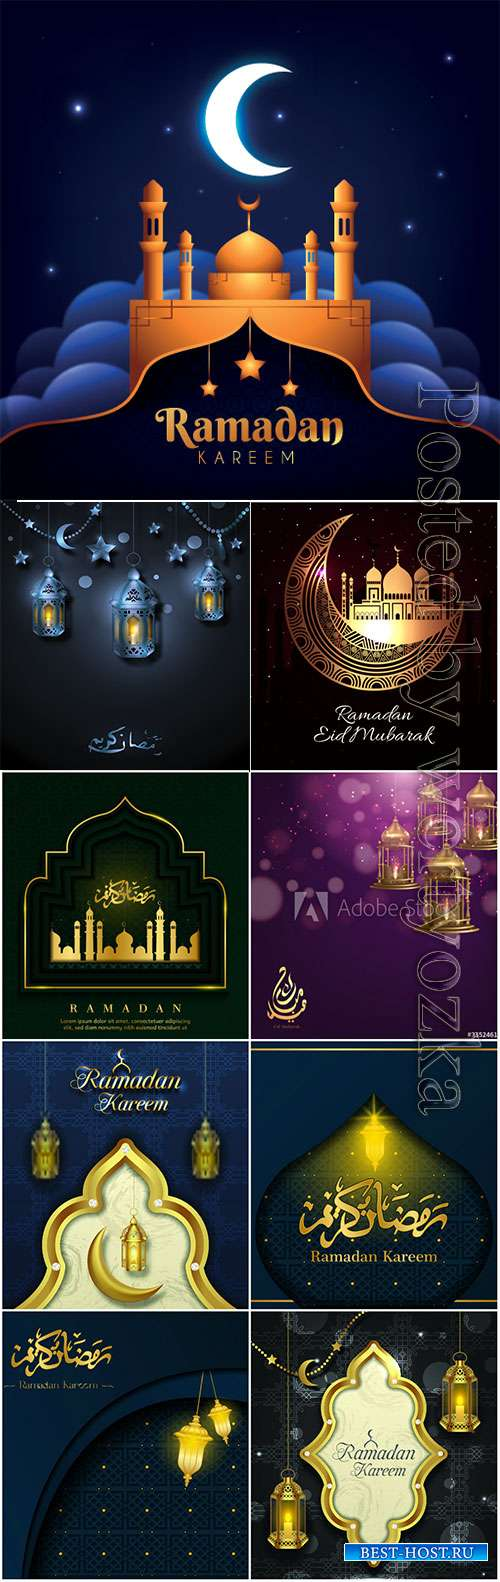 Ramadan Kareem vector background, Eid mubarak greeting card # 3